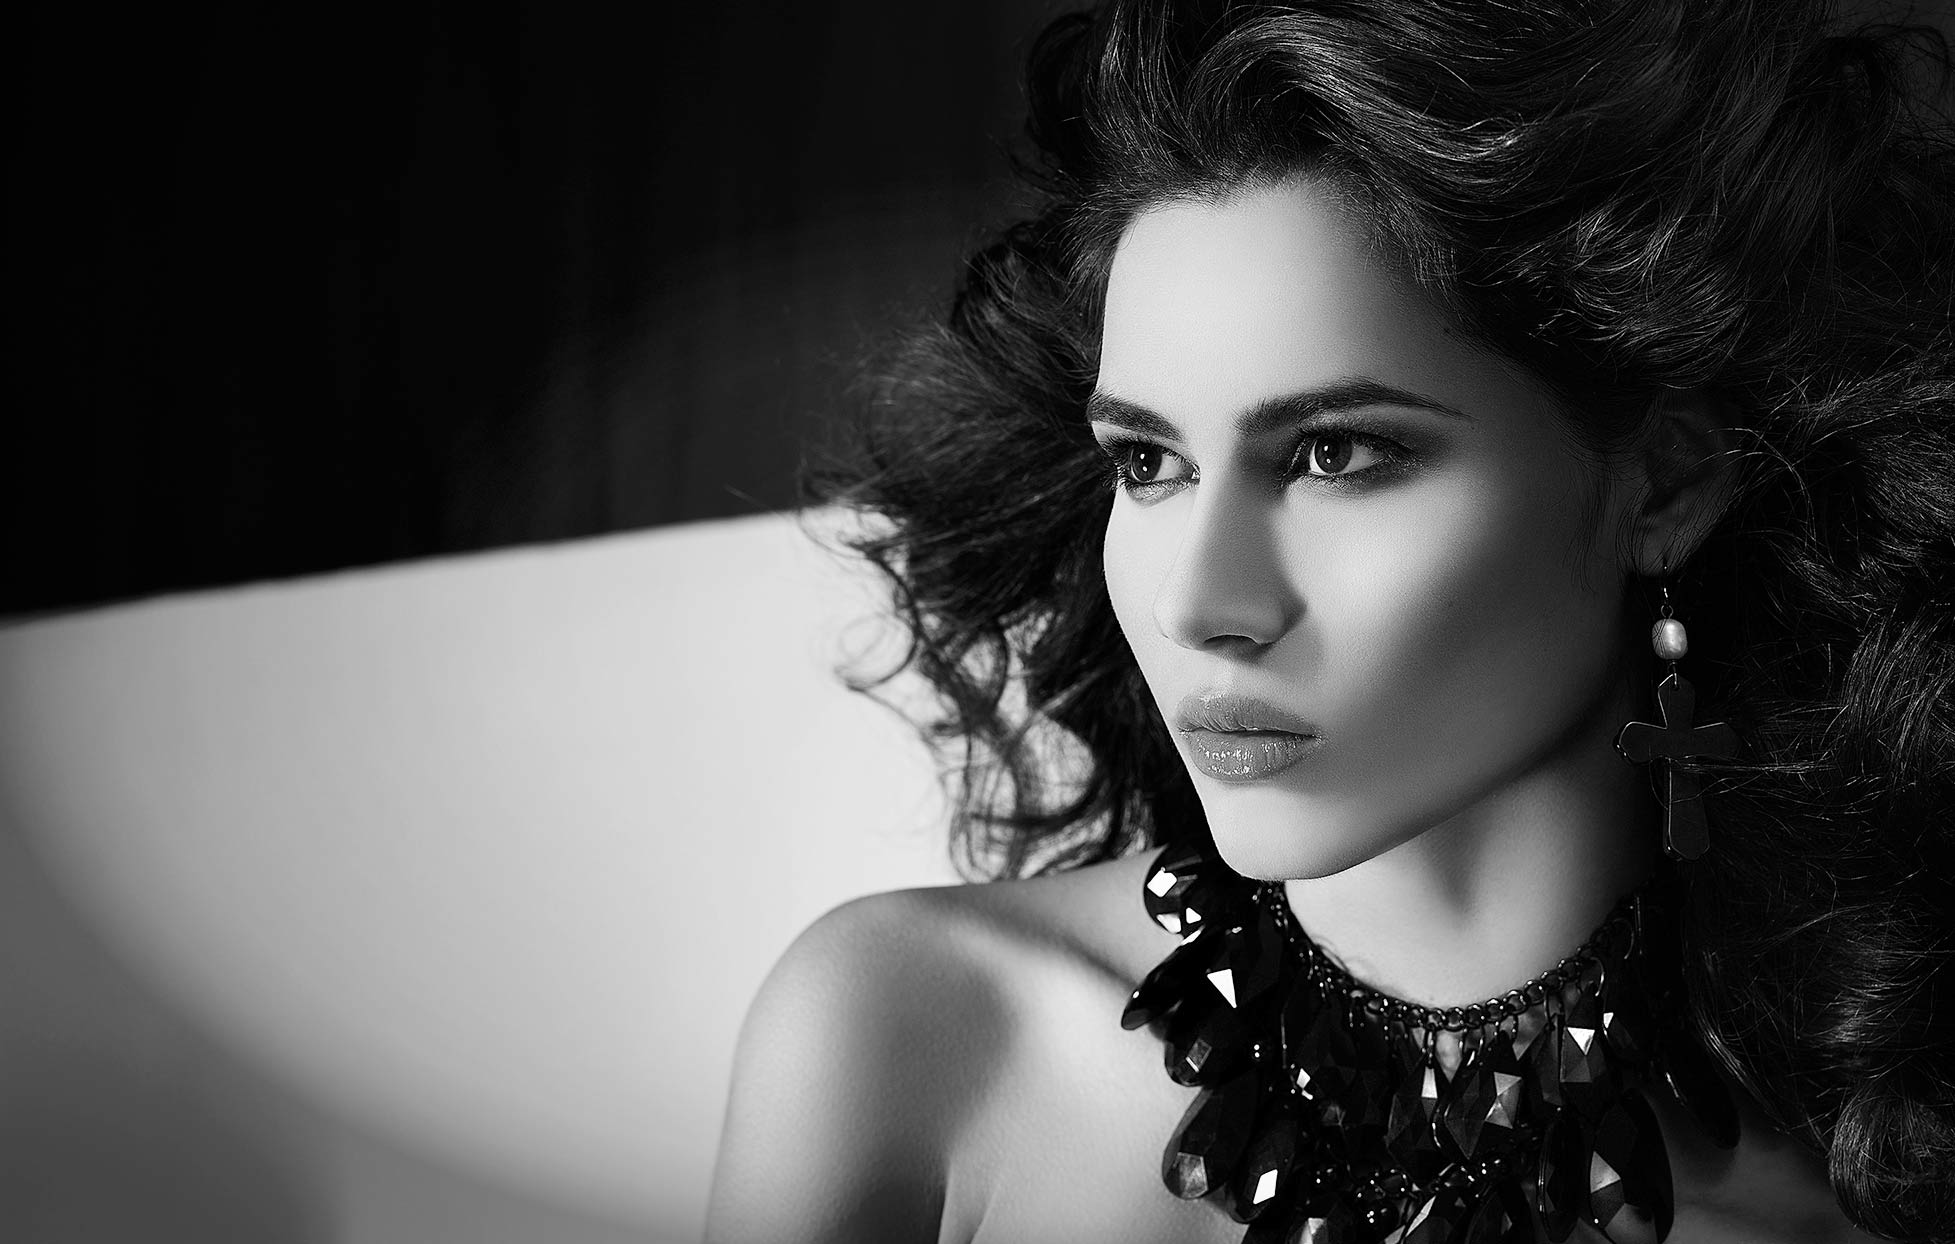 black and white portait of woman looking to the side with fancy black necklace - Mark DeLong: Fashion Gallery